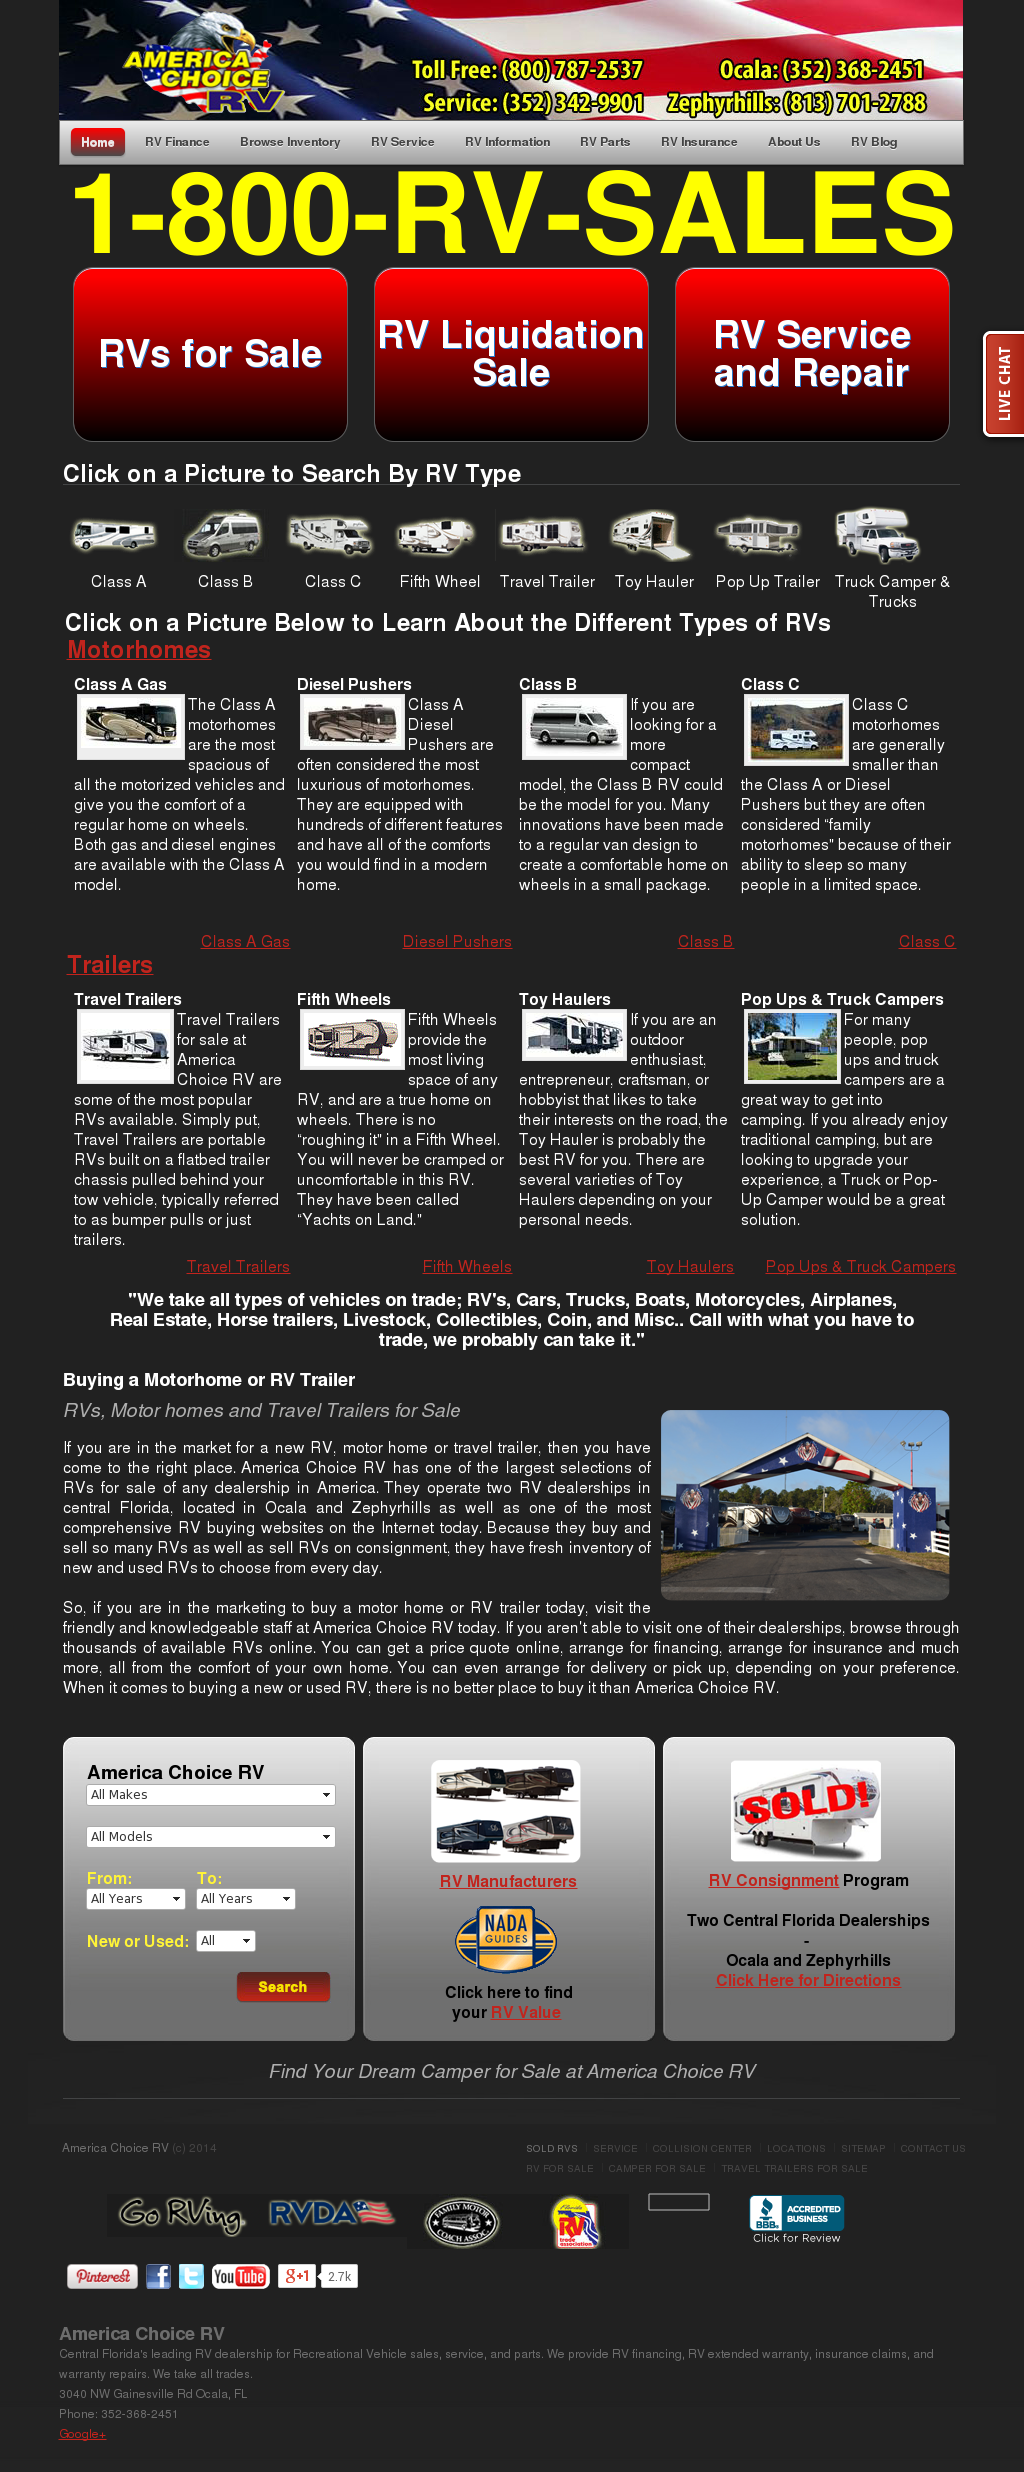 America Choice RV Competitors, Revenue and Employees - Owler